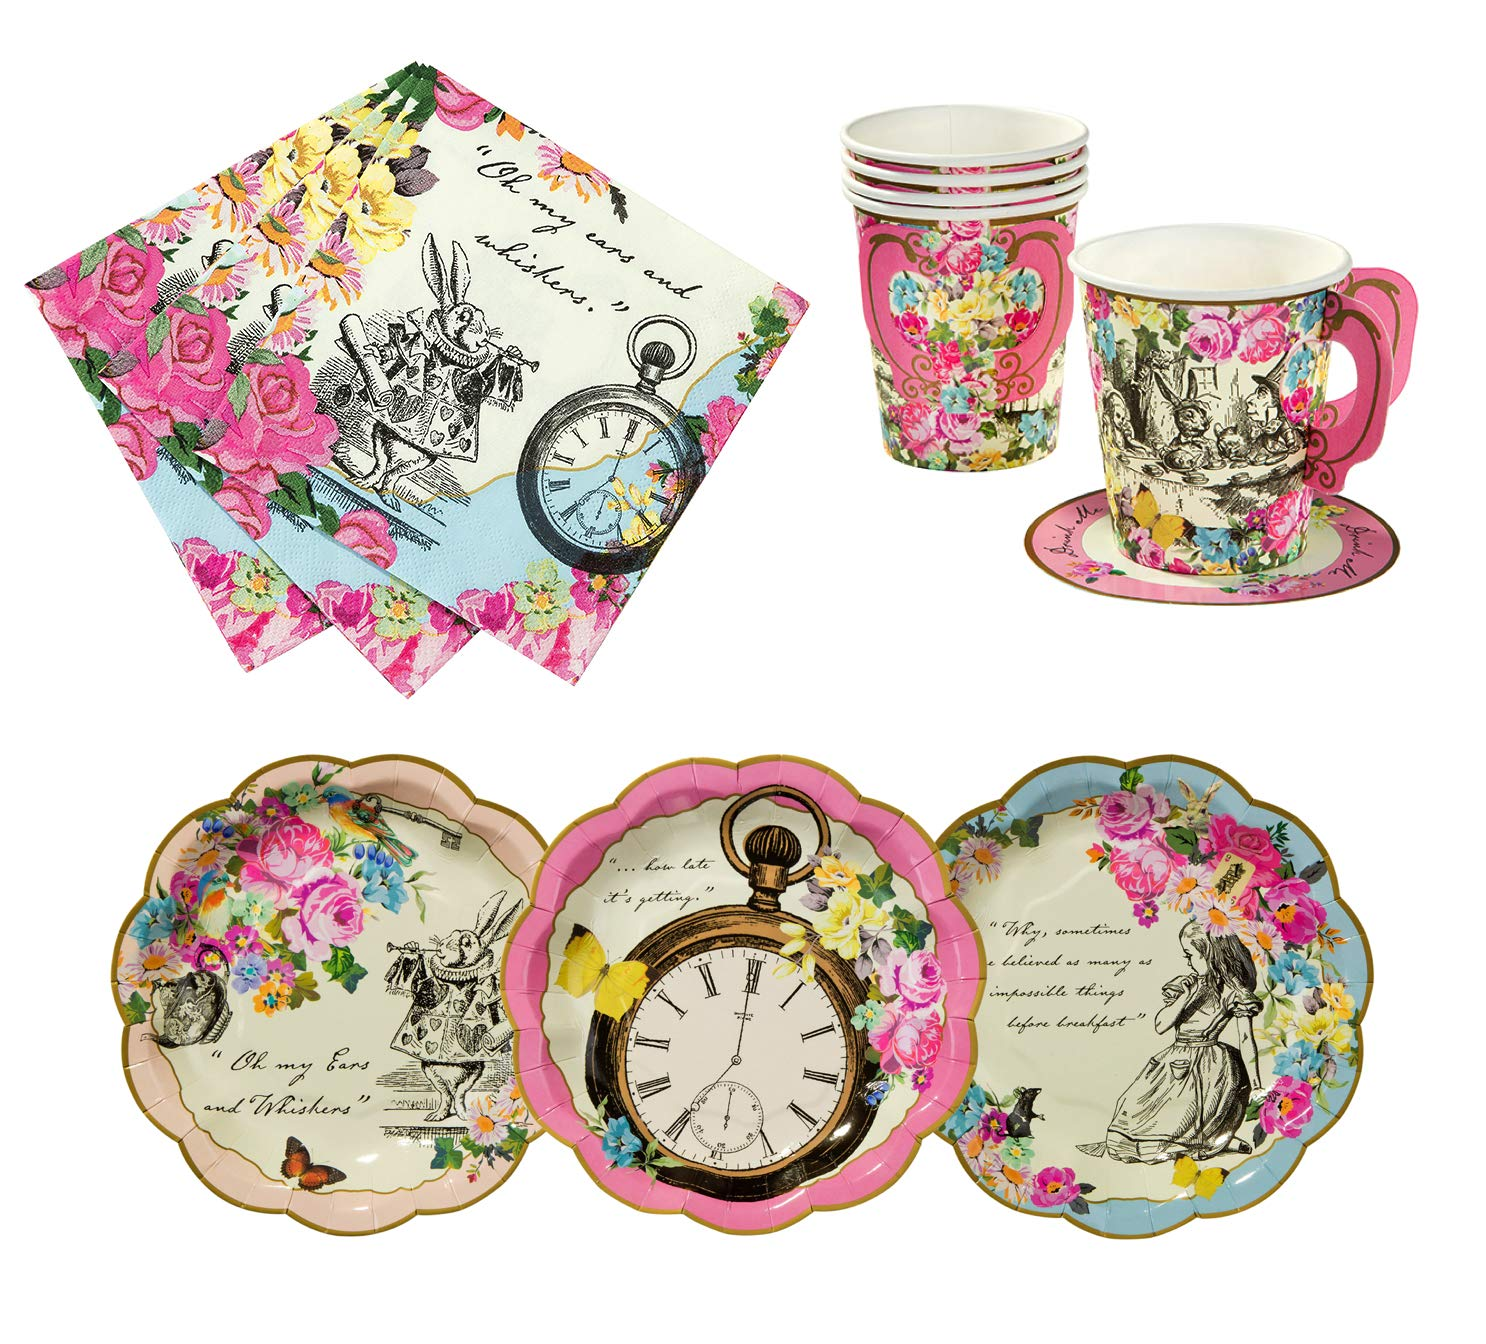 Talking Tables Alice in Wonderland Tea Party Set   Designer Mad Hatter Tea Cups and Saucer Sets, Alice Party Plates and Napkins   Perfect for Weddings, Birthday, Bridal Shower and Tea Parties